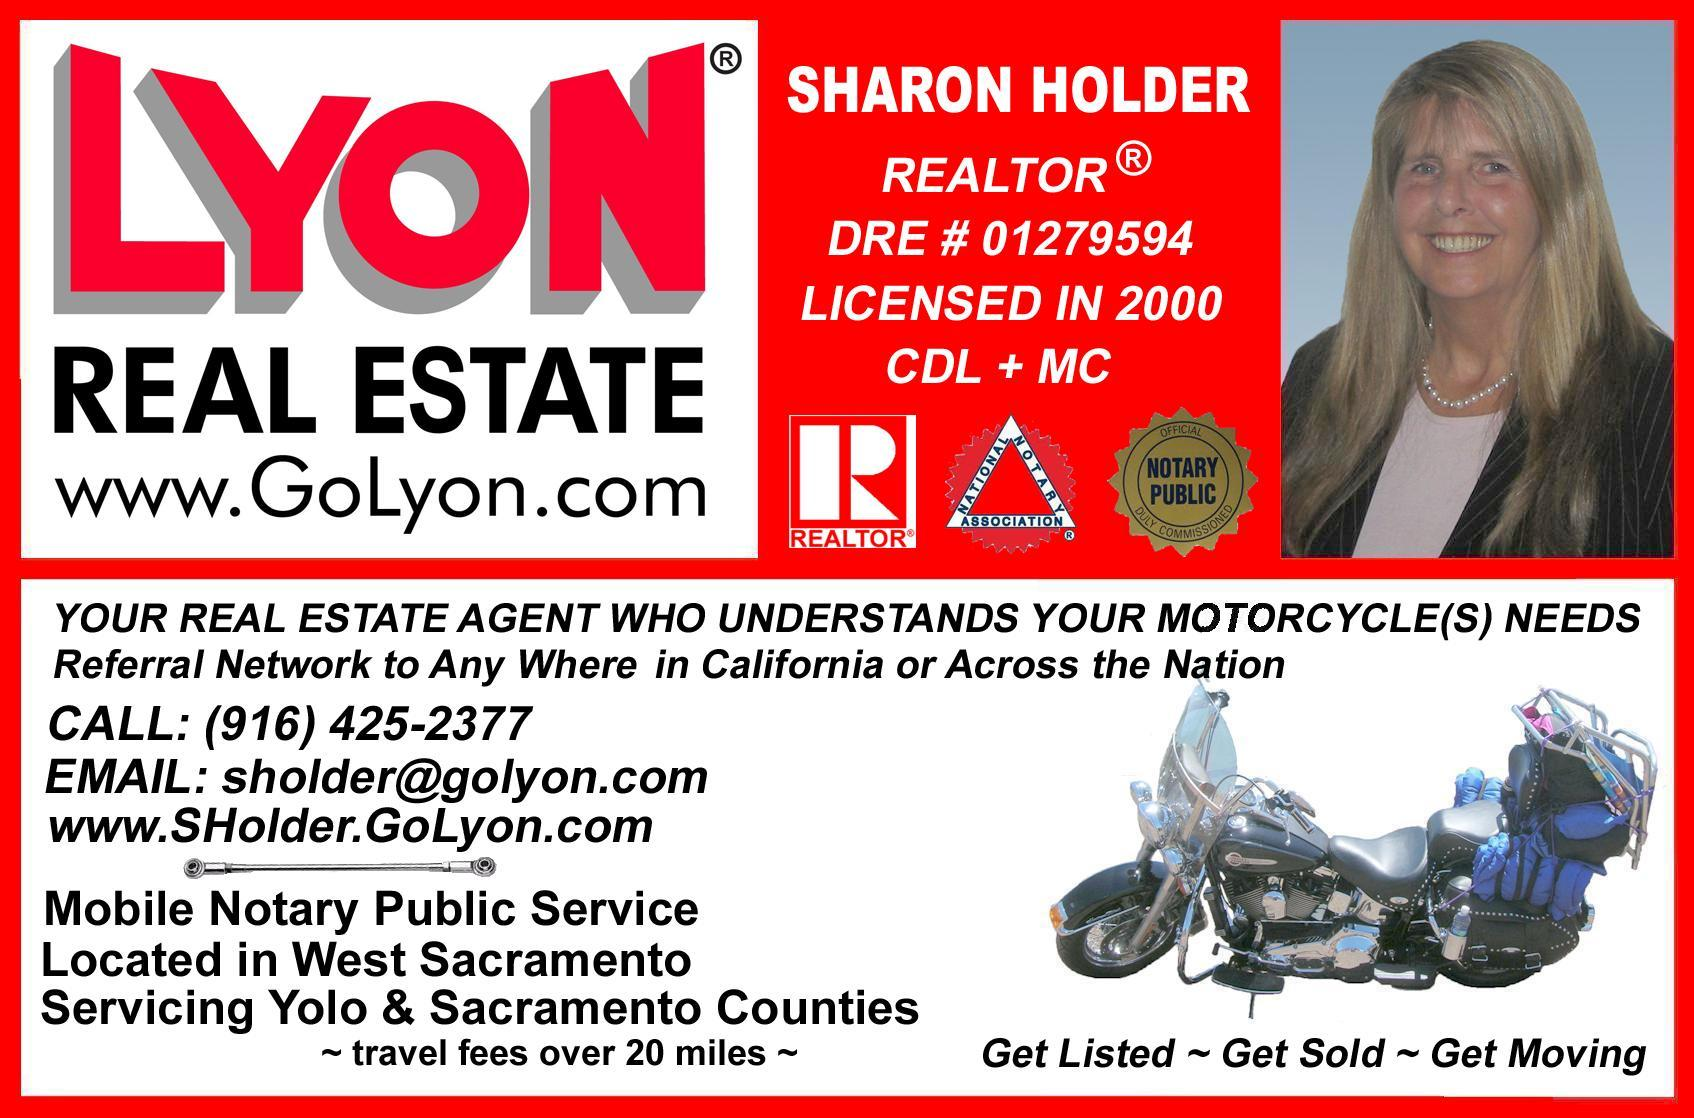 Sharon Holder, Realtor, Greater Sacramento Area